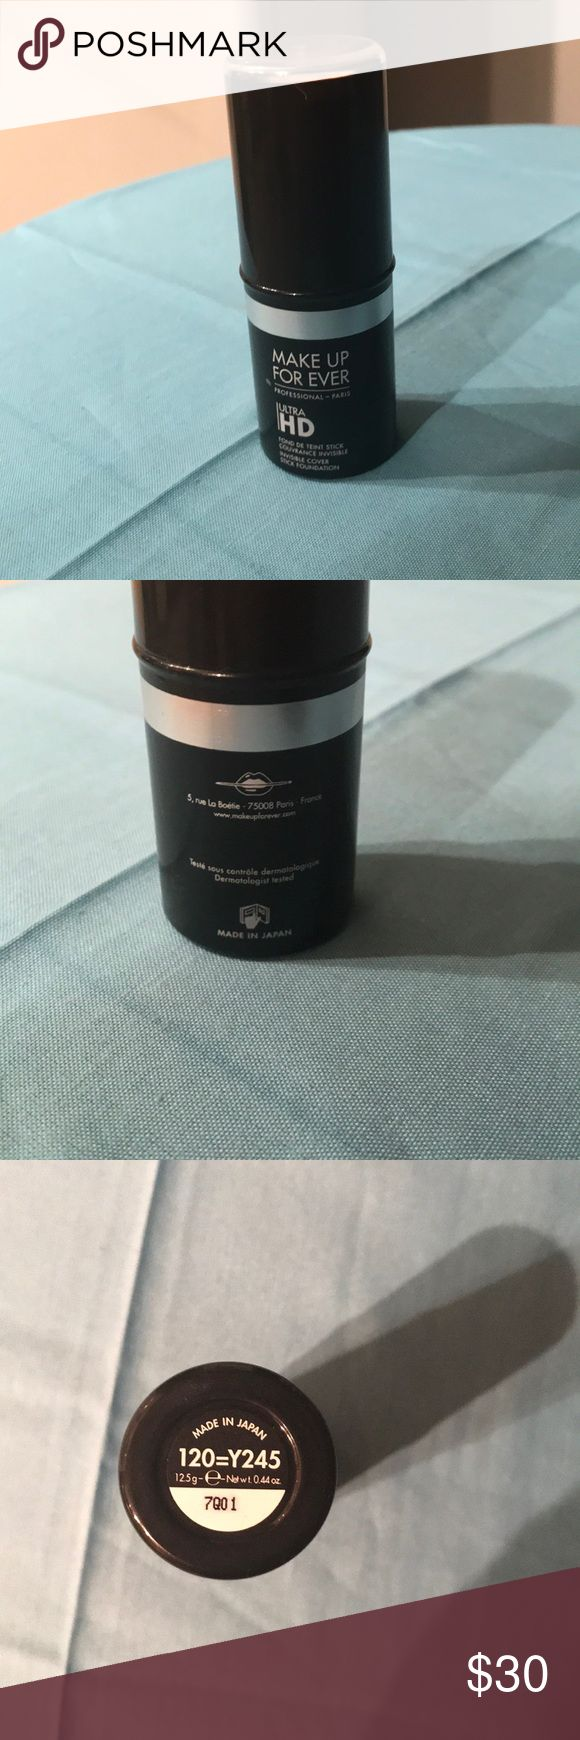 Make up for ever foundation Never used only tested. Makeup Foundation